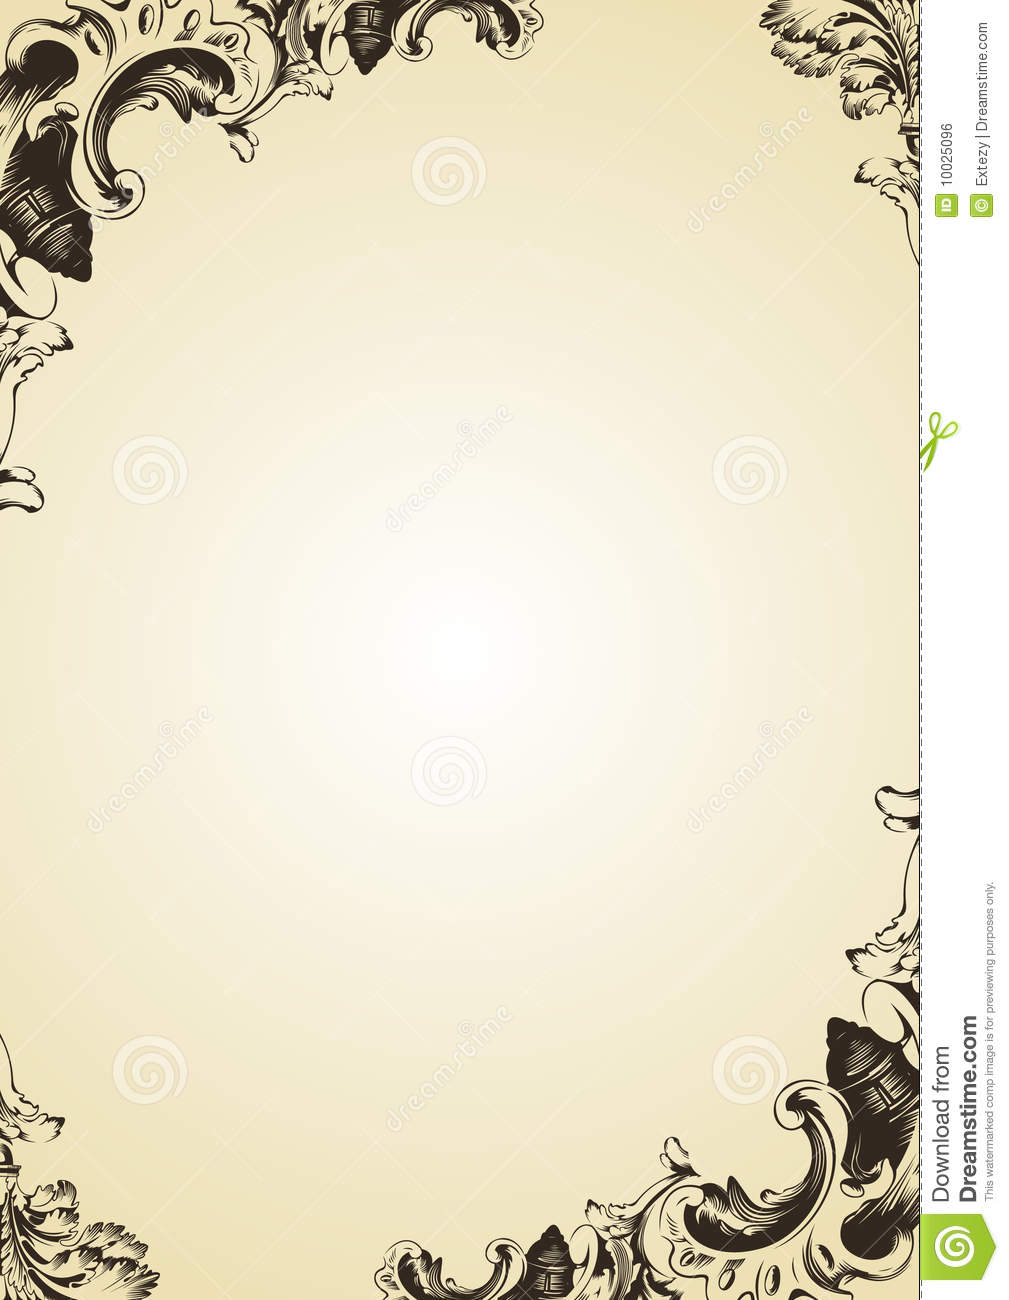 Vector Vintage Frame Cover Royalty Free Stock Image Image 10025096